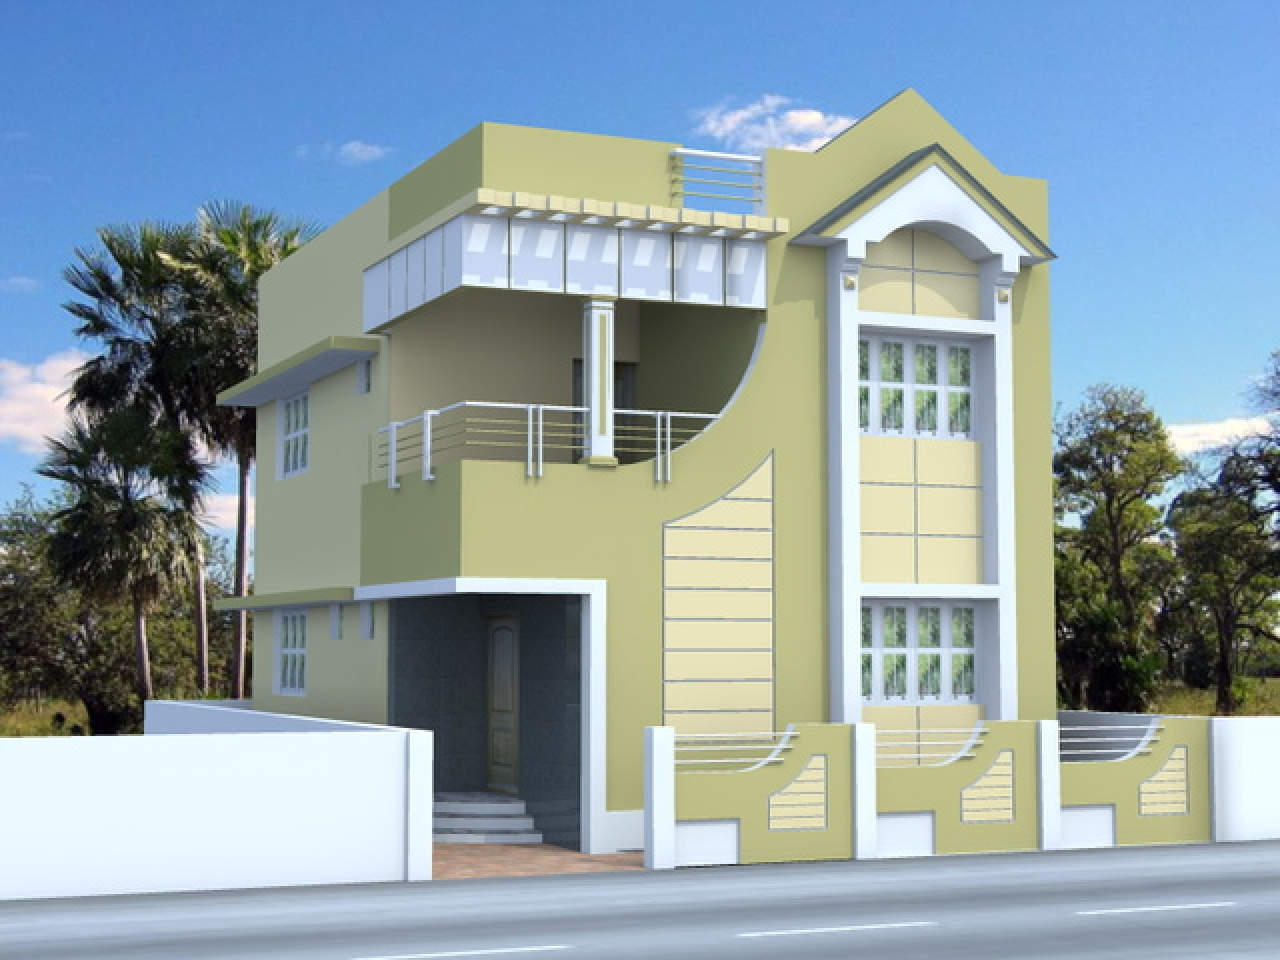 Small House Exterior Elevation : Small house elevation design exterior elevations of houses